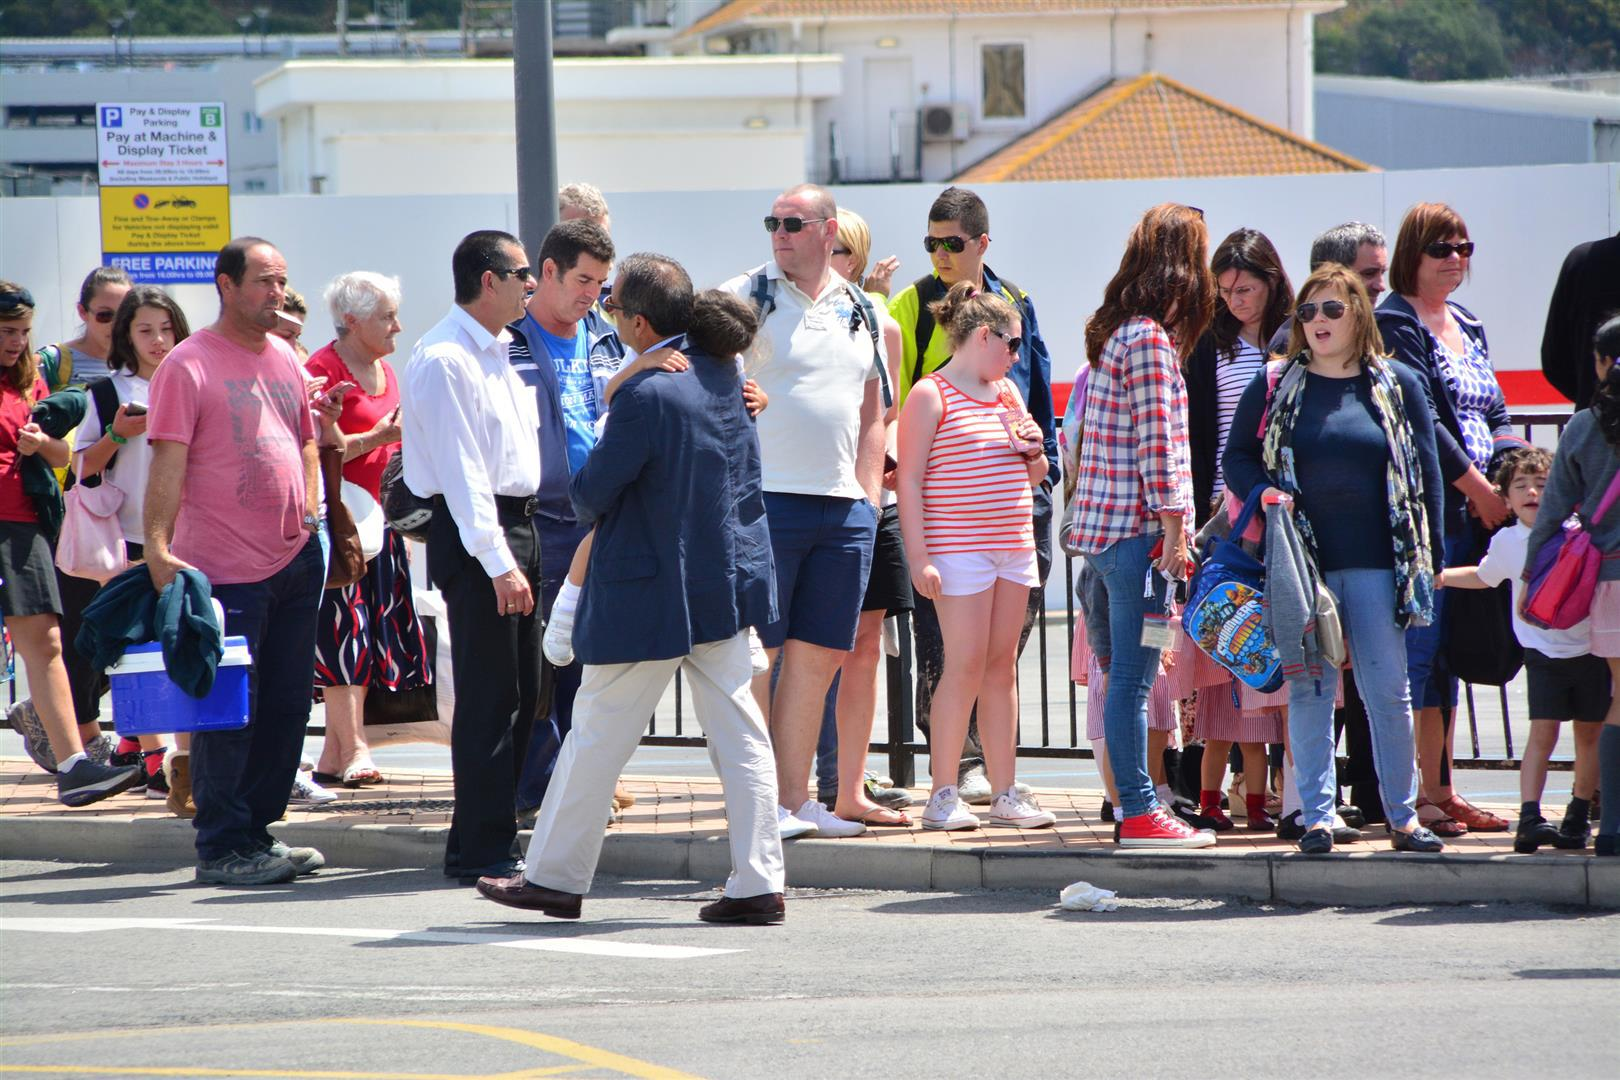 At 1500hrs on 28th May 2014 Spanish border controls at the Gibraltar-Spain frontier saw over one hour delays imposed on pedestrians. The restrictions were placed at a time when school children and tourist were crossing. At approximately 1630hrs the same restrictions were eased.